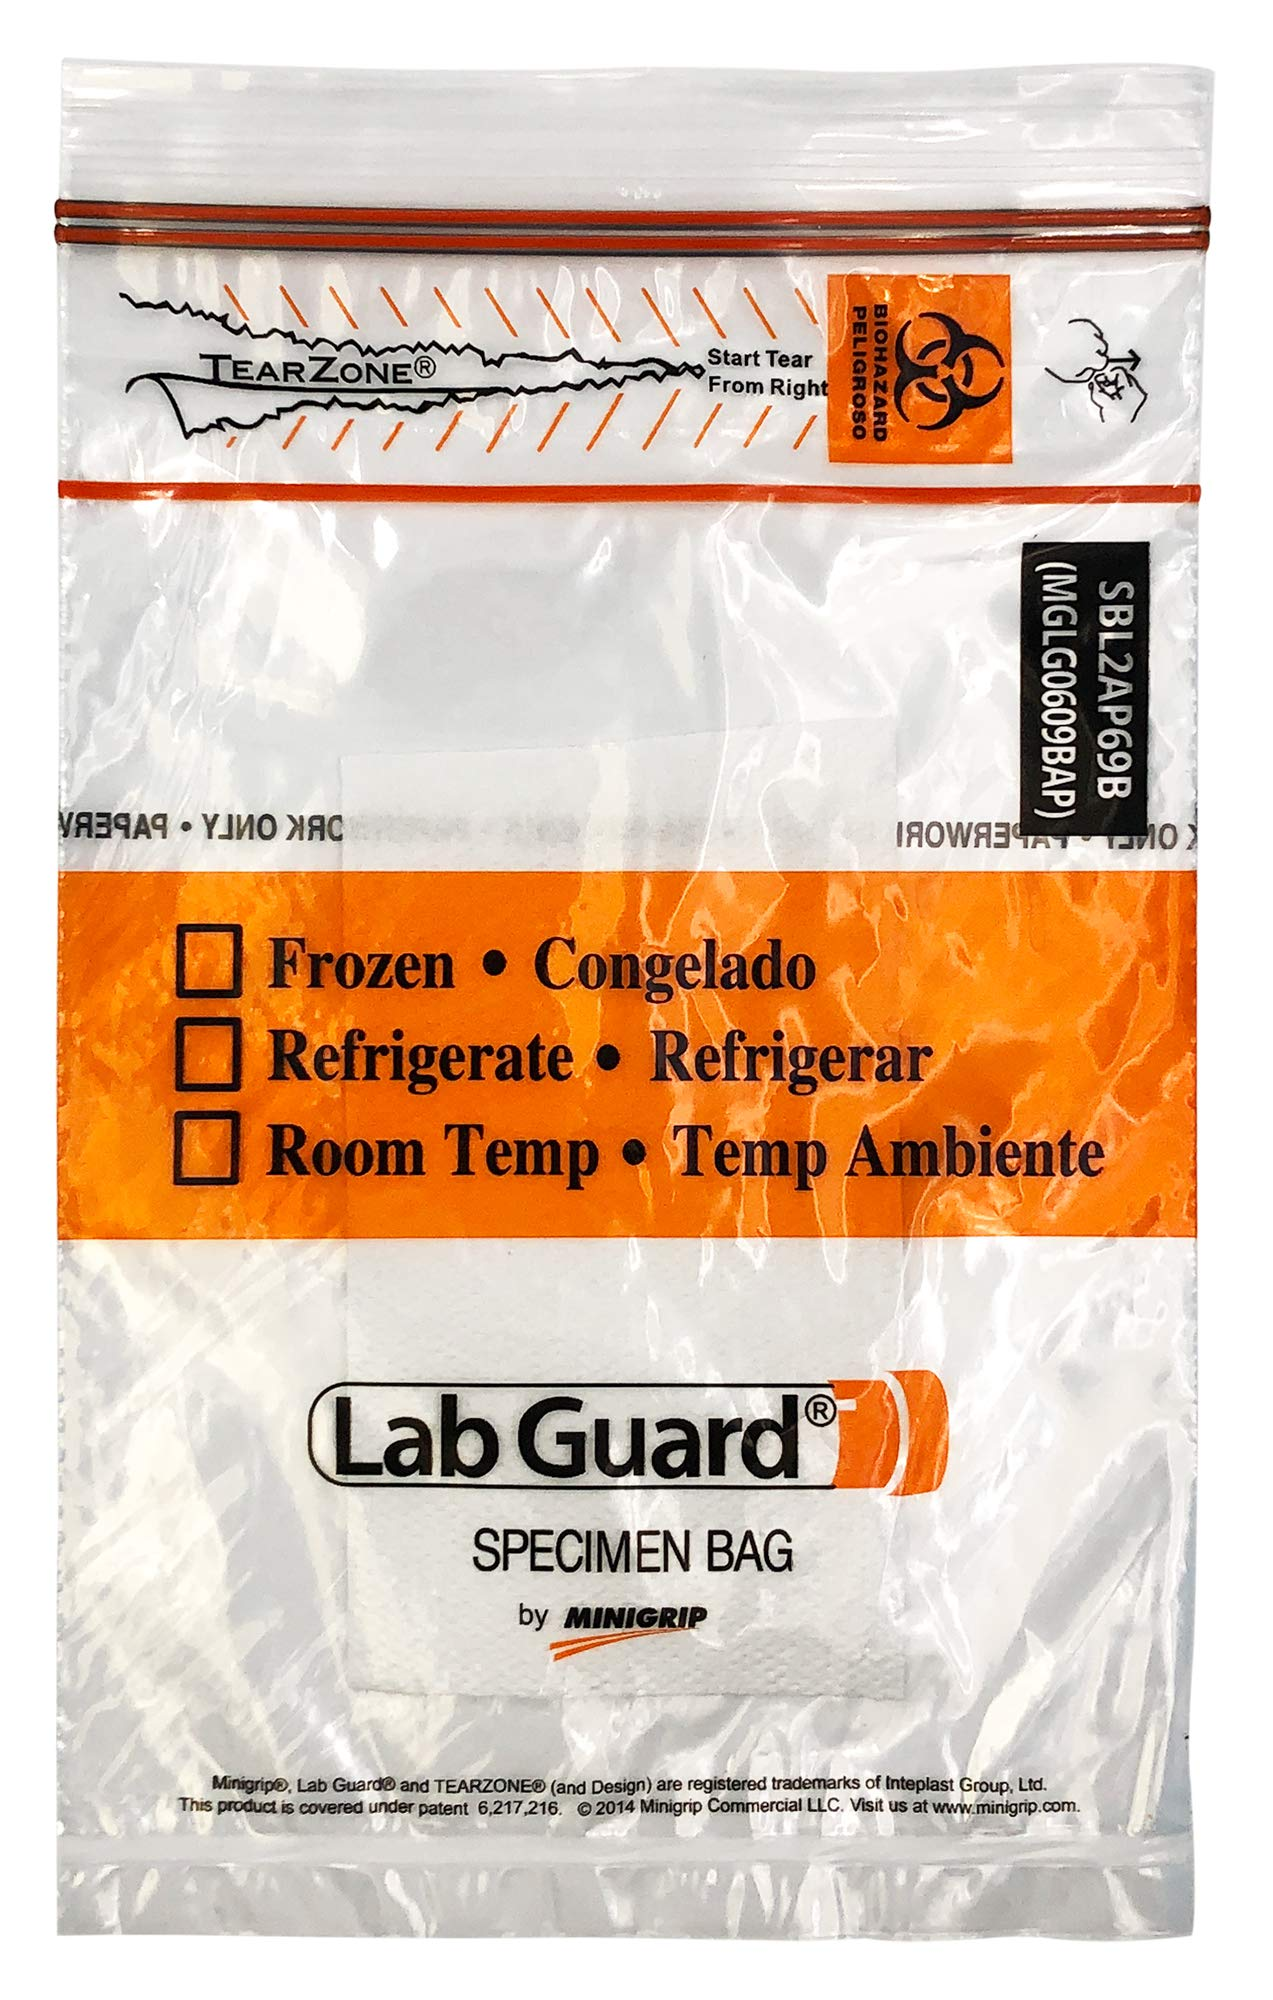 Lab Guard SBL2AP69B Polyethylene (LDPE/LLDPE Blend) Specimen Bag with TearZone and Absorbent Pad, Destroyable Biohazard Symbol  50 bags (Pack of 20) by Minigrip Lab Guard